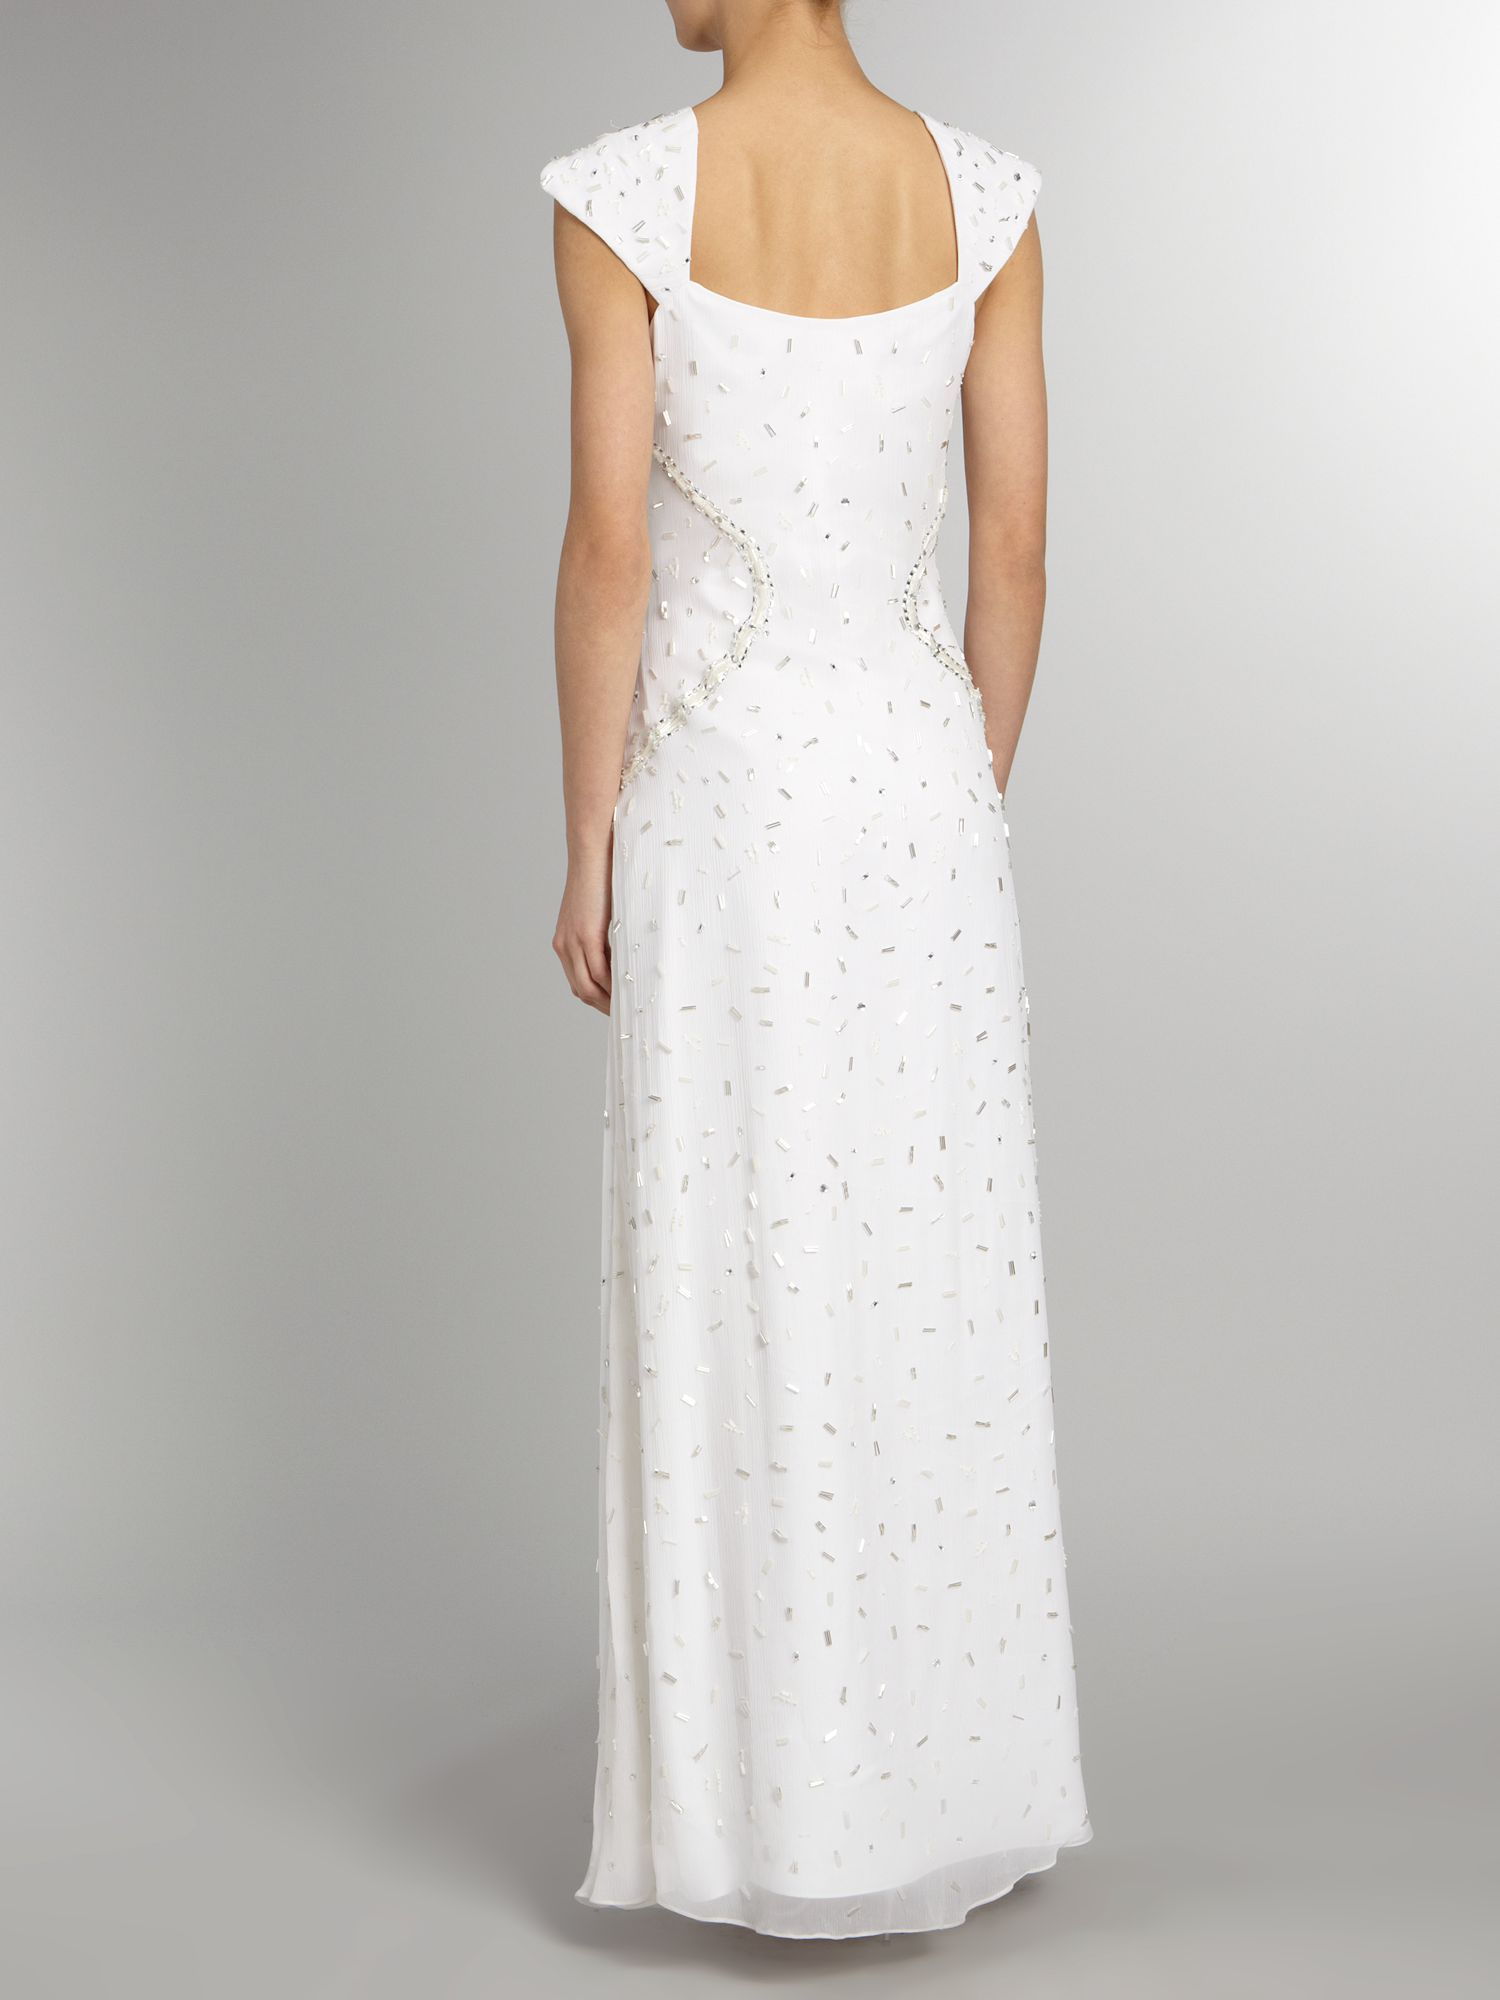 Marcela all over beaded dress